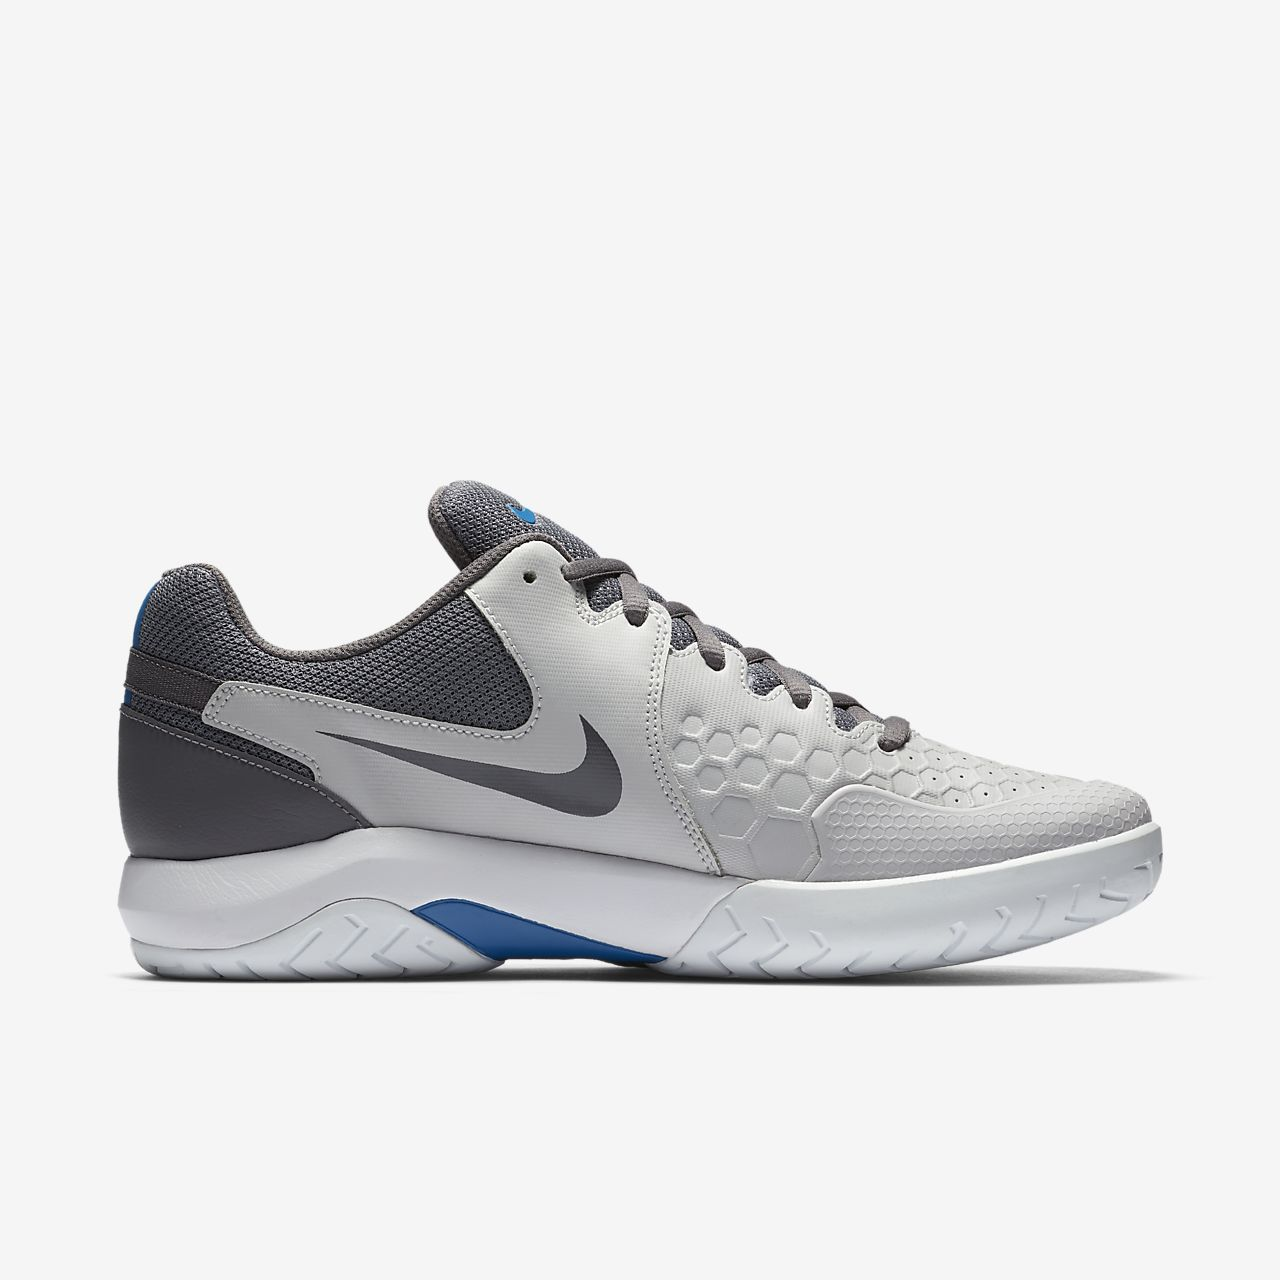 NIKE AIR ZOOM RESISTANCE MENS TENNIS SHOES - MENS SIZE  10